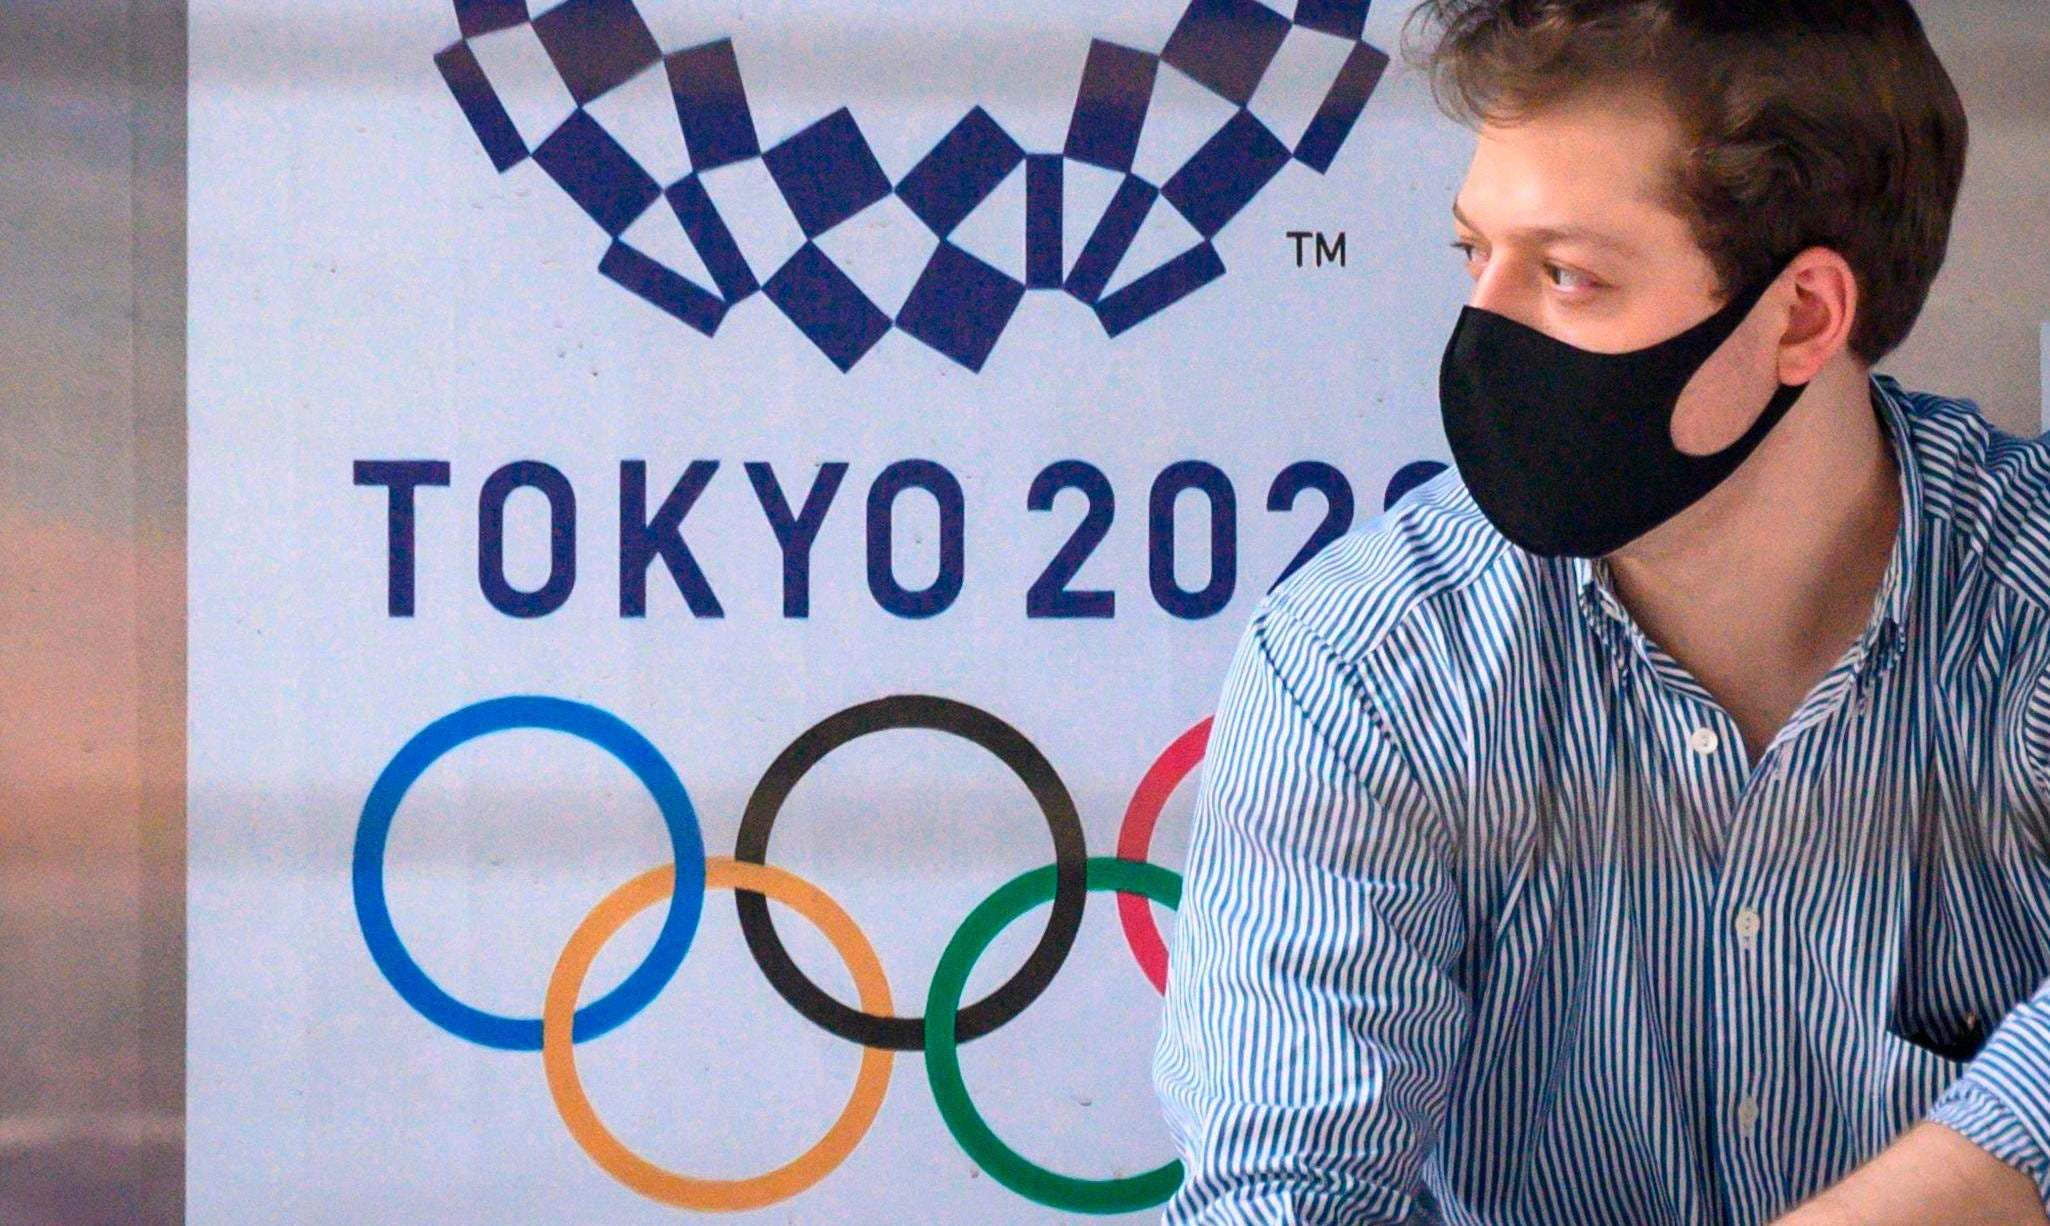 the-tokyo-olympics-is-under-pressure-to-be-cancelled.jpg (317.66 Kb)